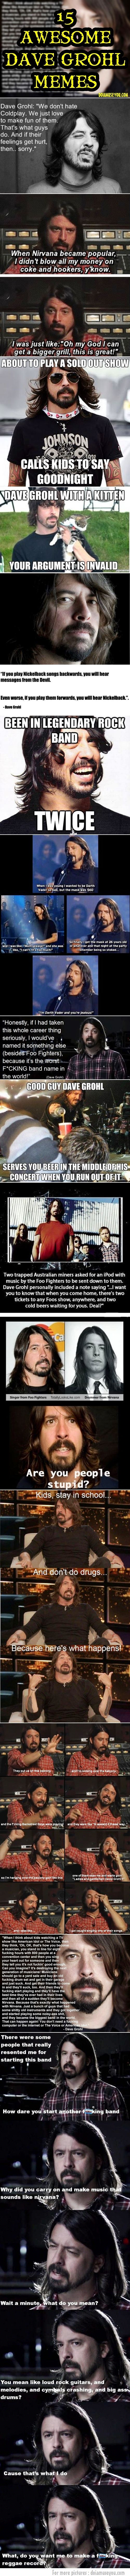 15 Awesome Dave Grohl Memes To encourage ALL artists - he is a new philosopher for today!